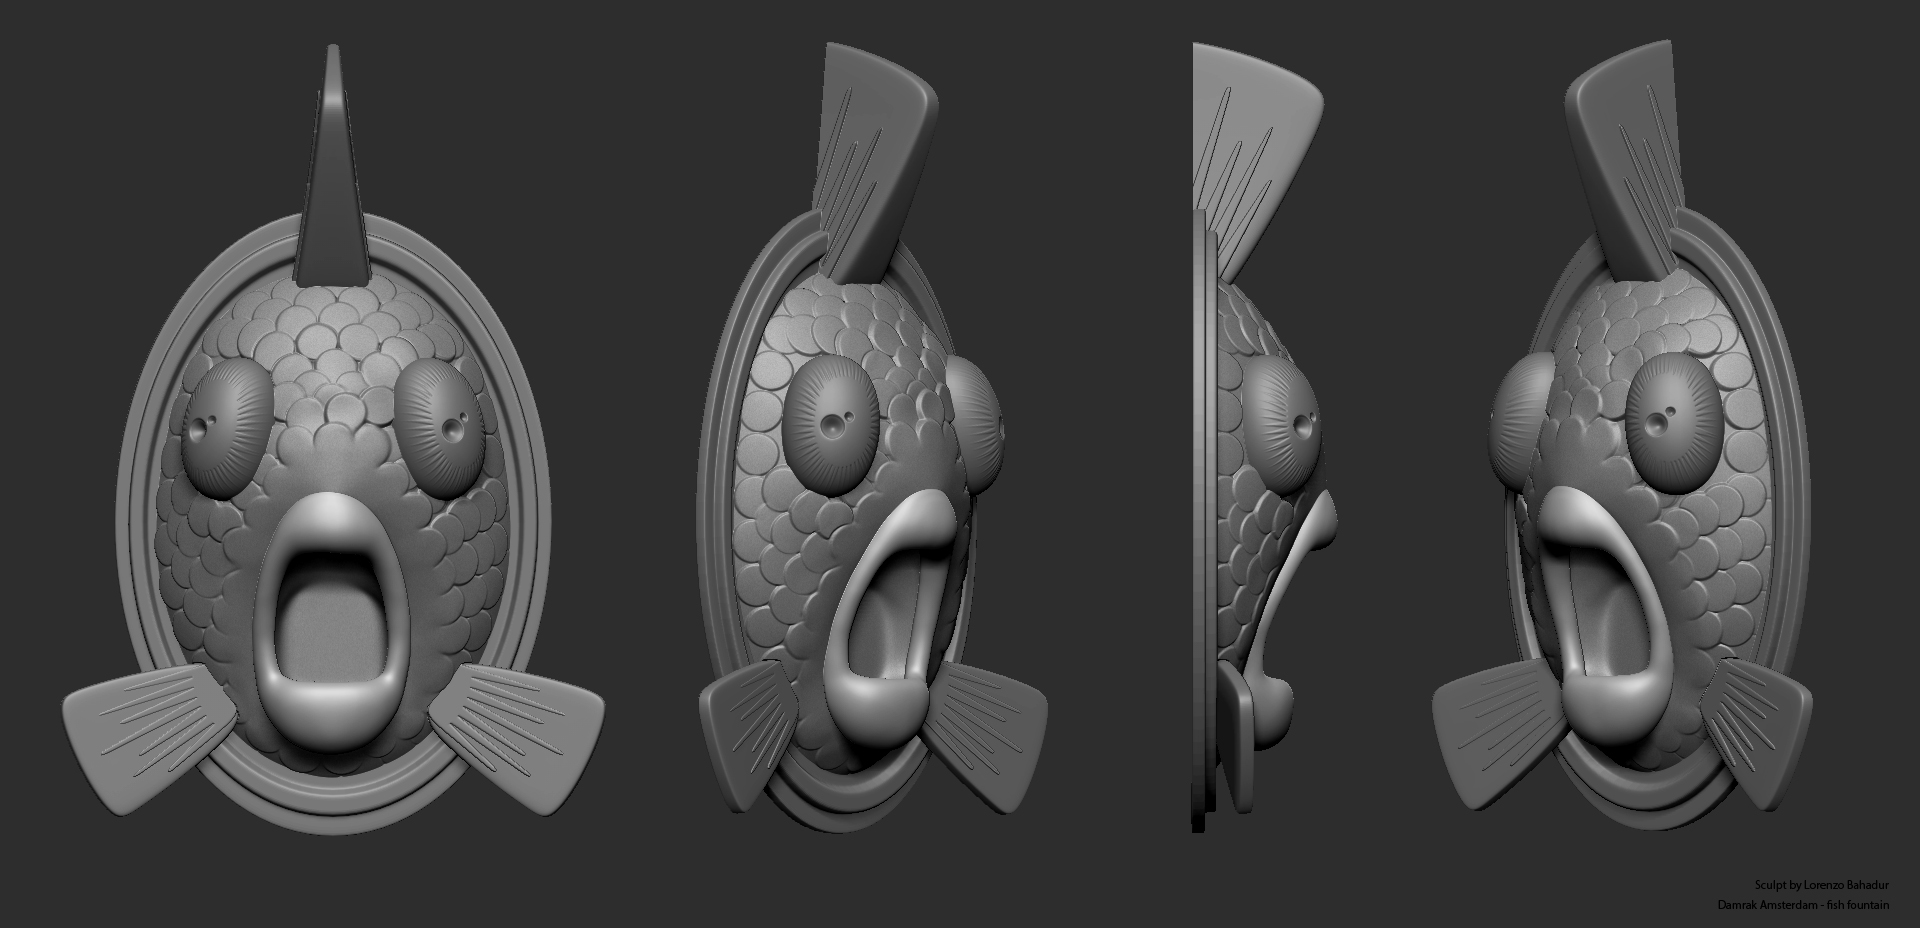 3D Sculpture zbrush grab